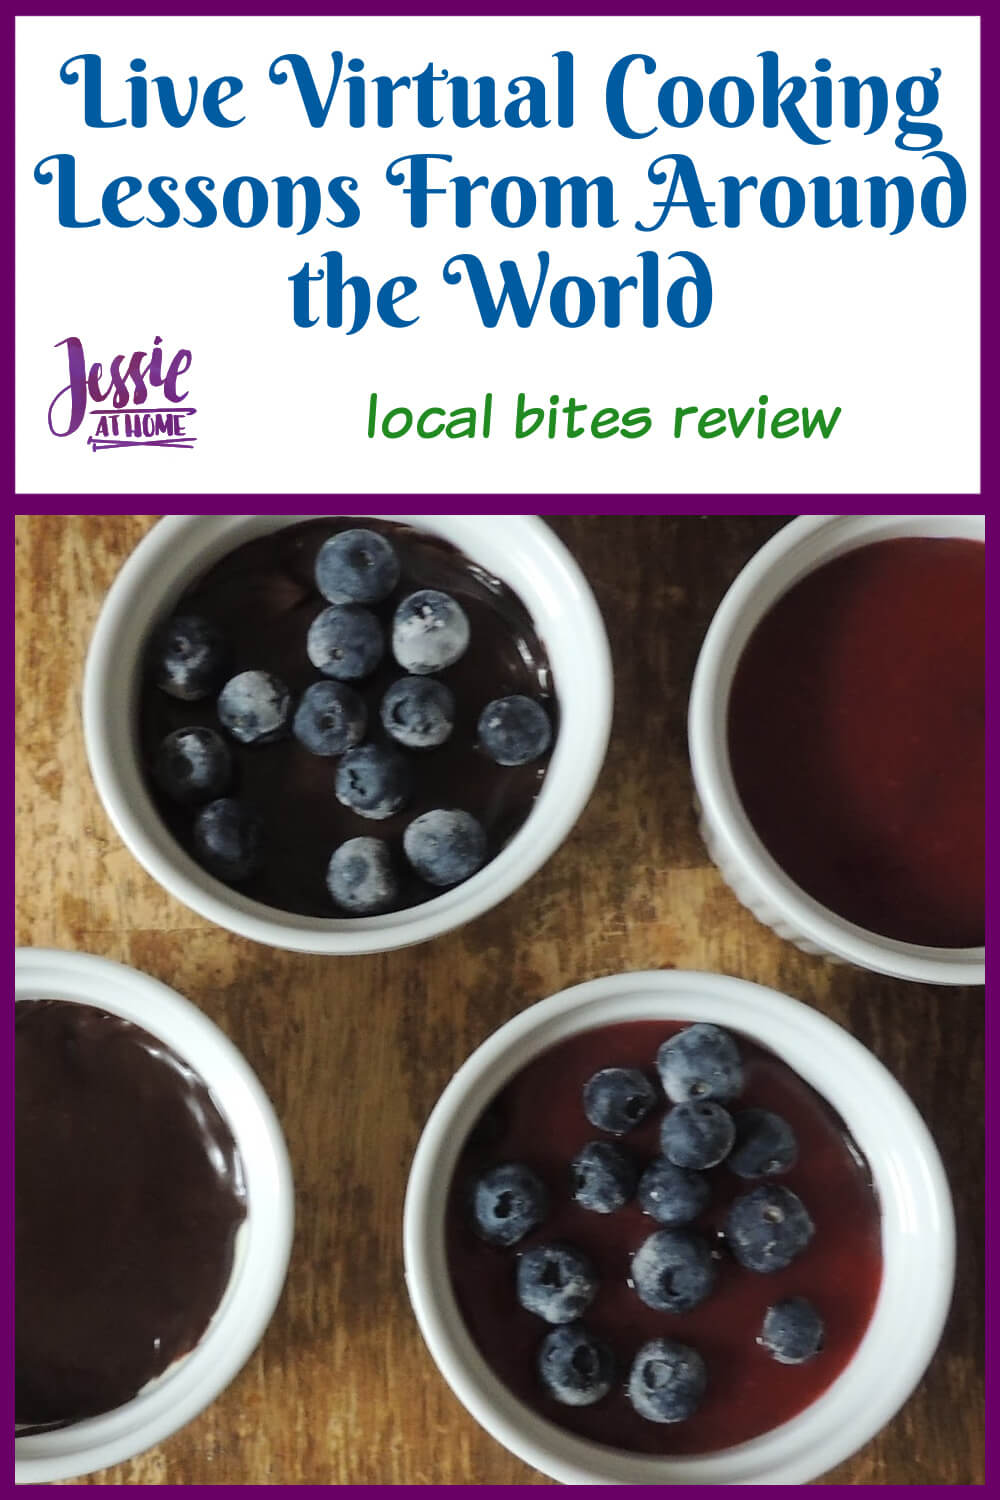 Live Virtual Cooking Lessons From Around the World - Local Bites Review by Jessie At Home - Featured Image